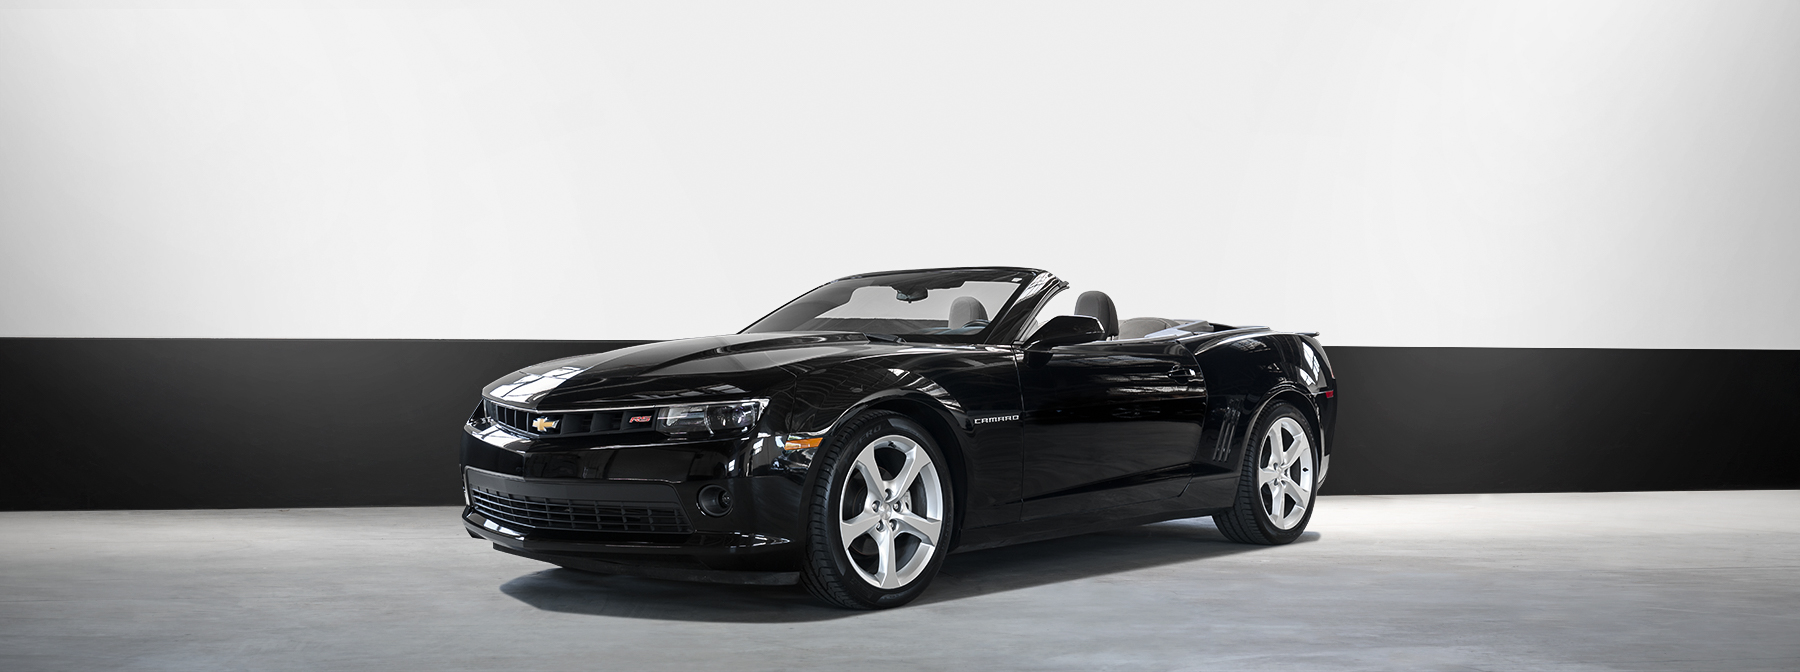 Rent a Chevrolet Camaro in Los Angeles